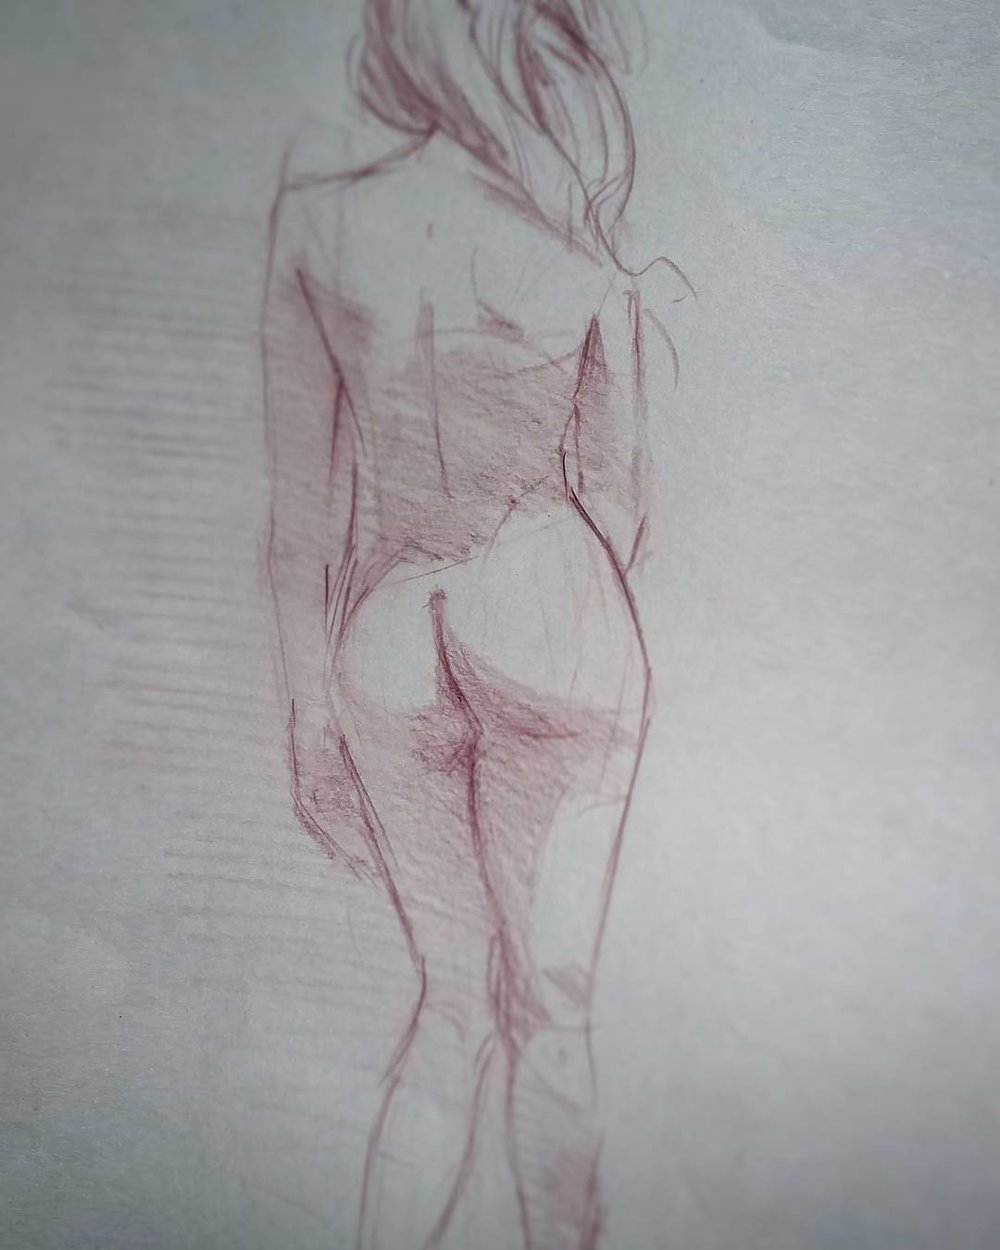 10-minute figure study. Col-erase pencil on paper.